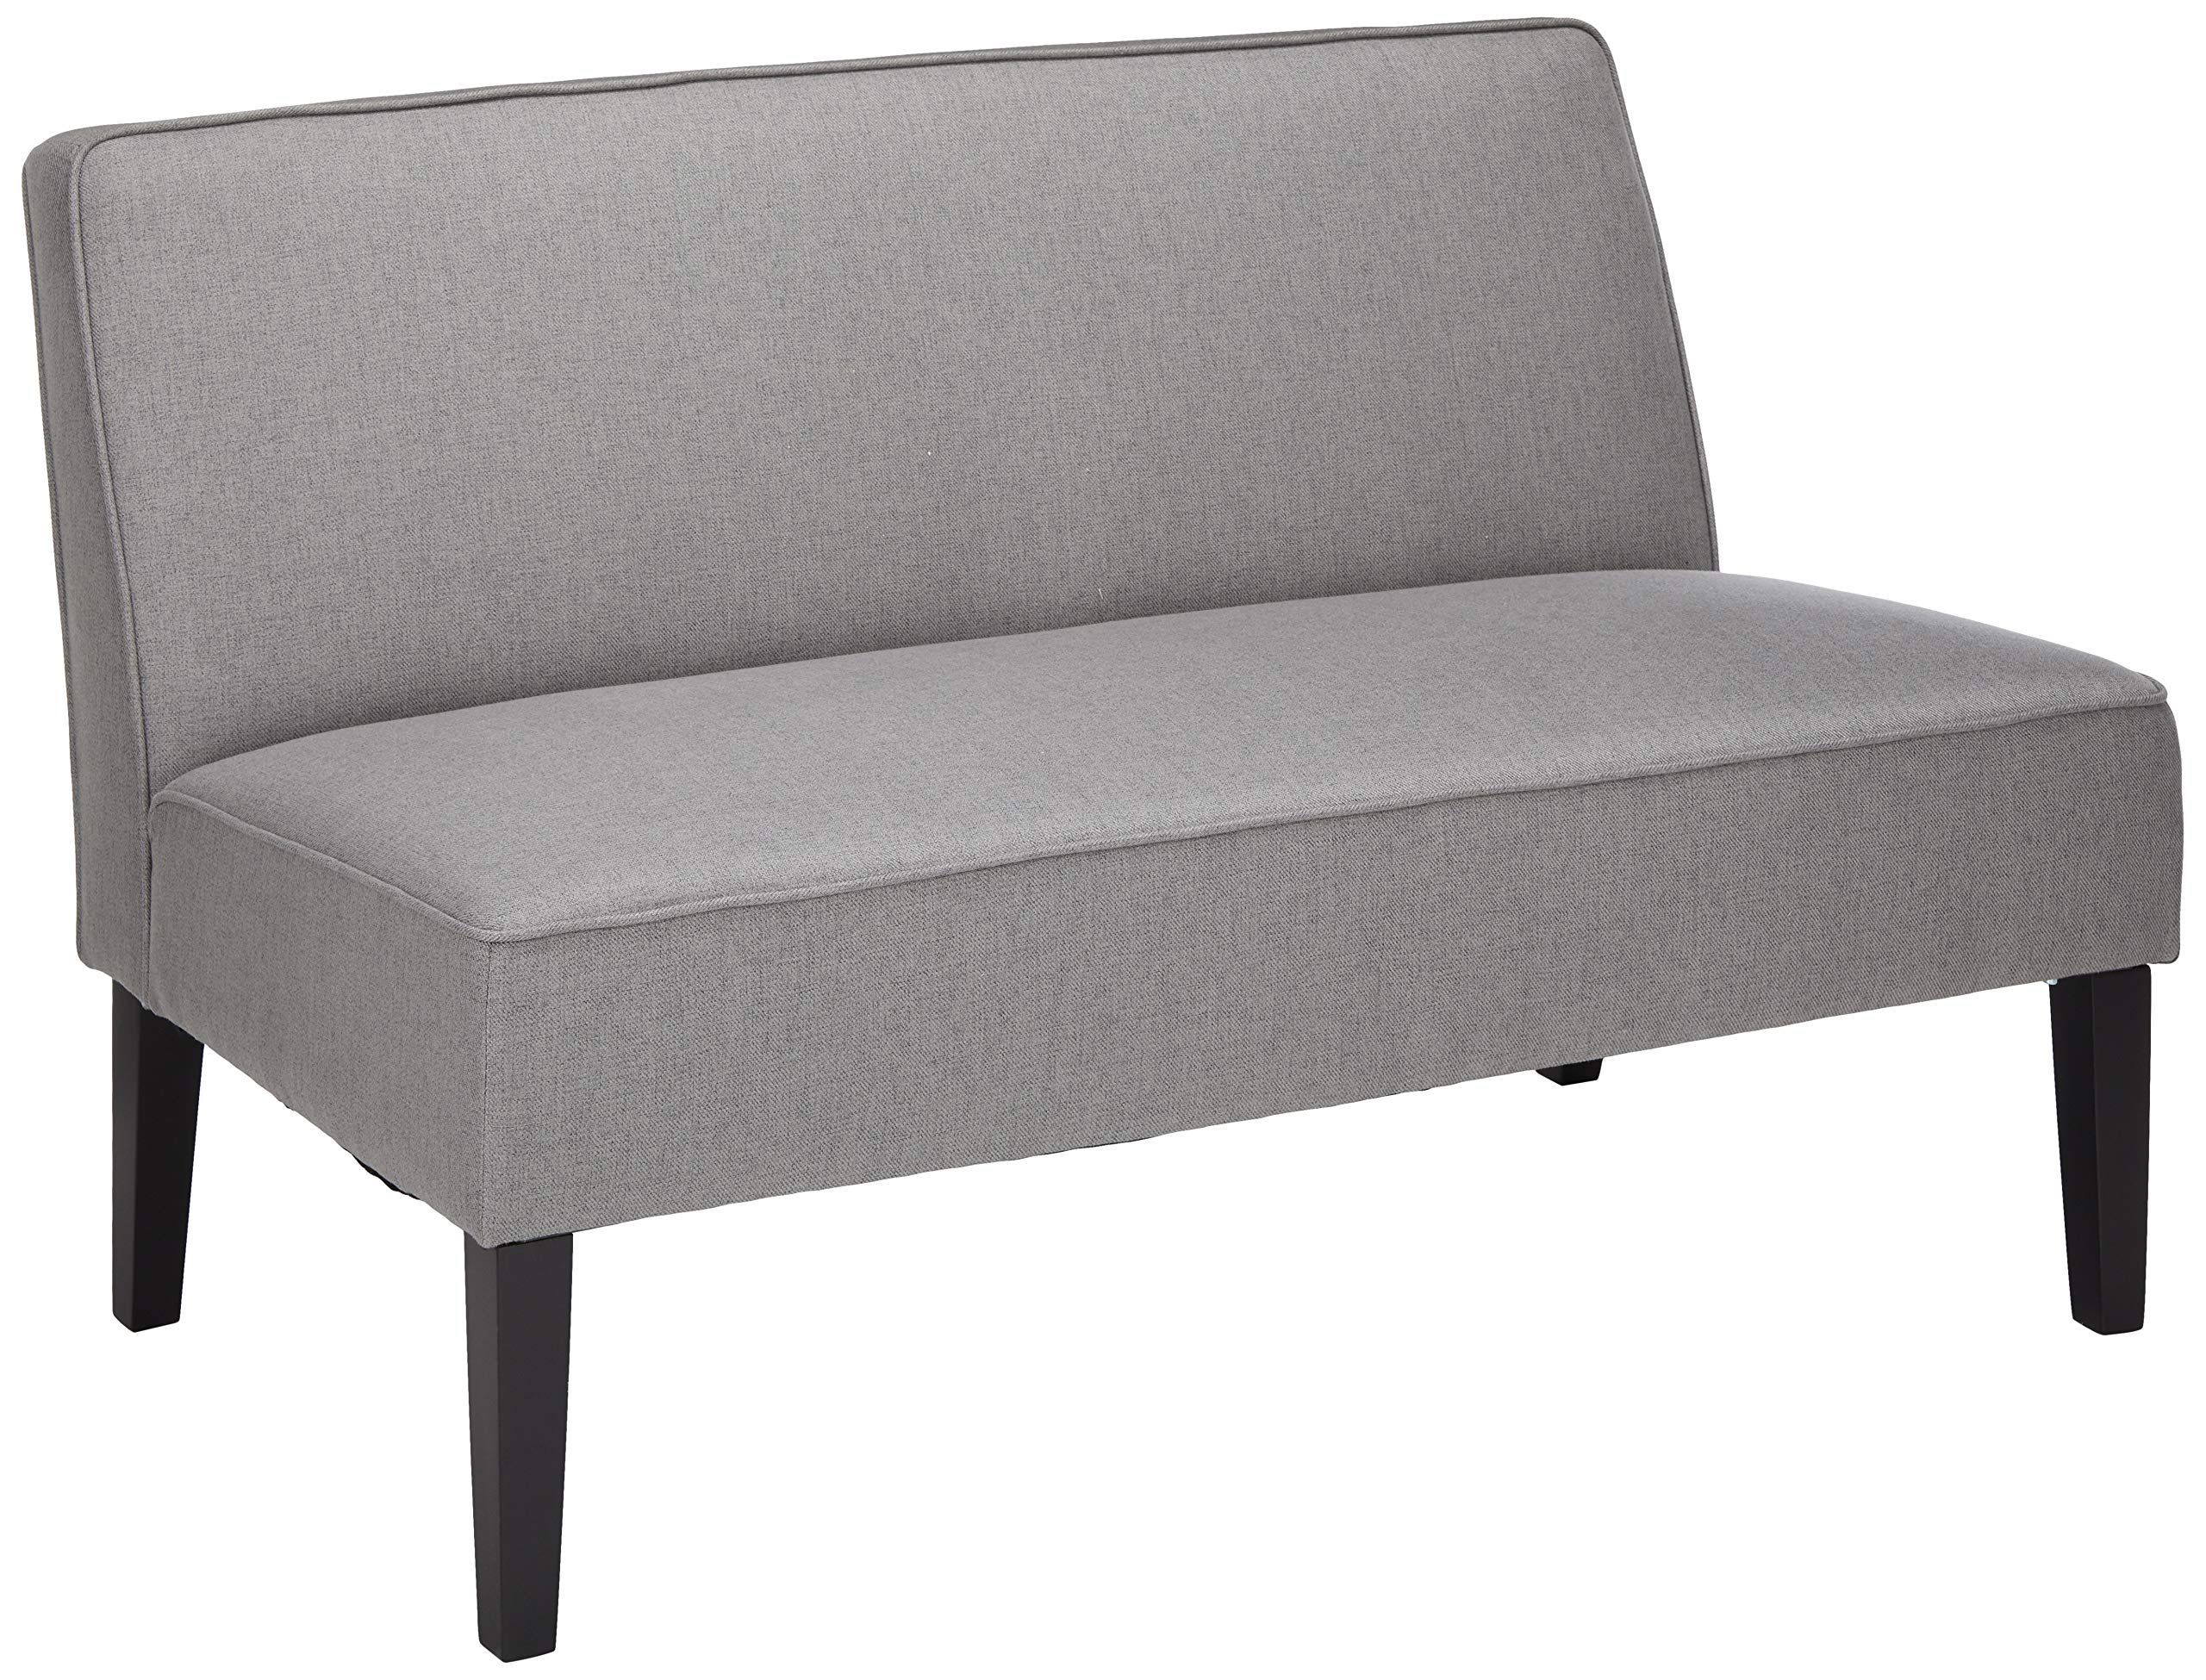 Christopher Knight Home Chandler Grey Fabric Love Seat by Christopher Knight Home